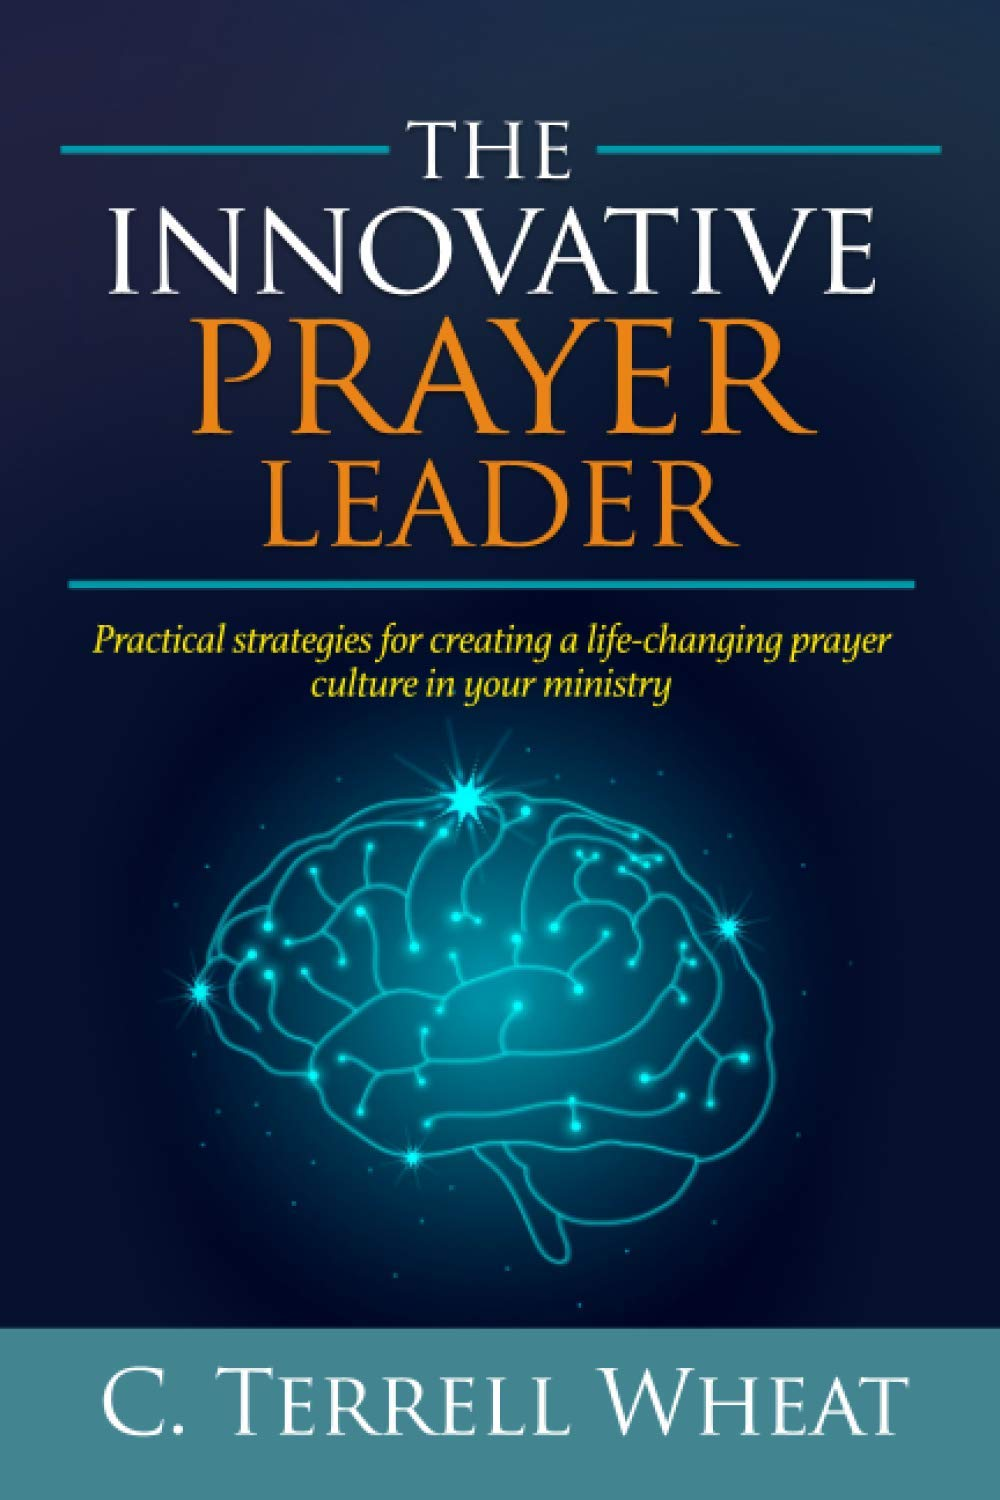 The Innovative Prayer Leader: Practical strategies for creating a life-changing prayer culture in your ministry